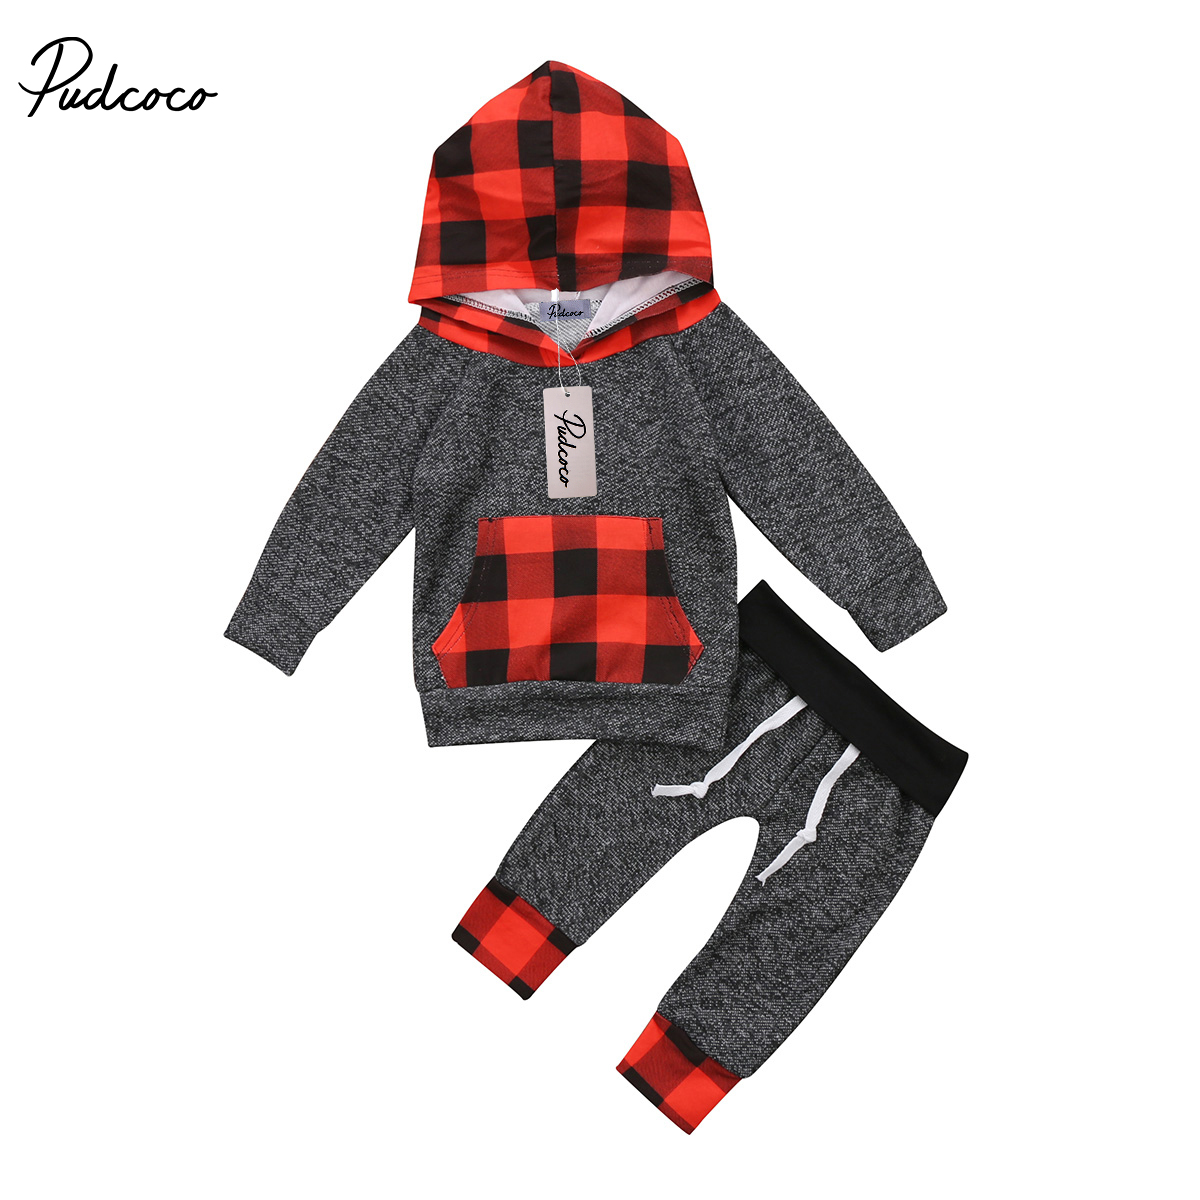 Xmas Newborn Baby Toddler Boys Girls Winter Clothes Long Sleeve Hooded Red Black Plaid Tops Pants Outfits Set 0-5Y